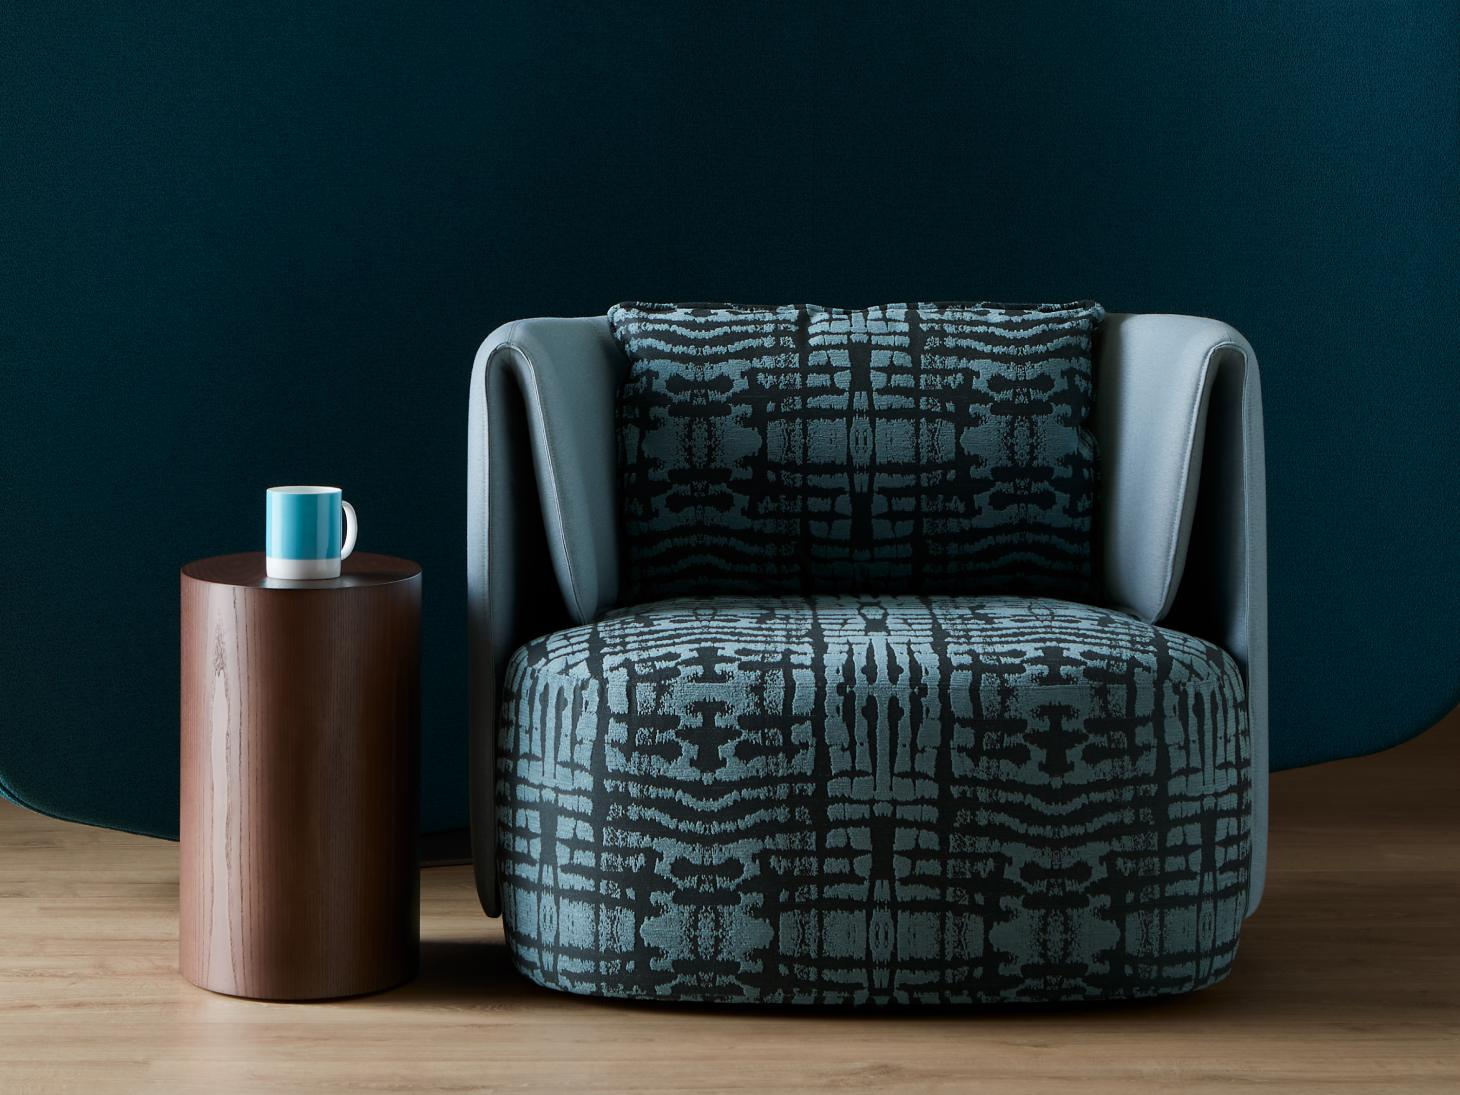 Armchair upholstered in blue patterned fabric by Bernhardt Design